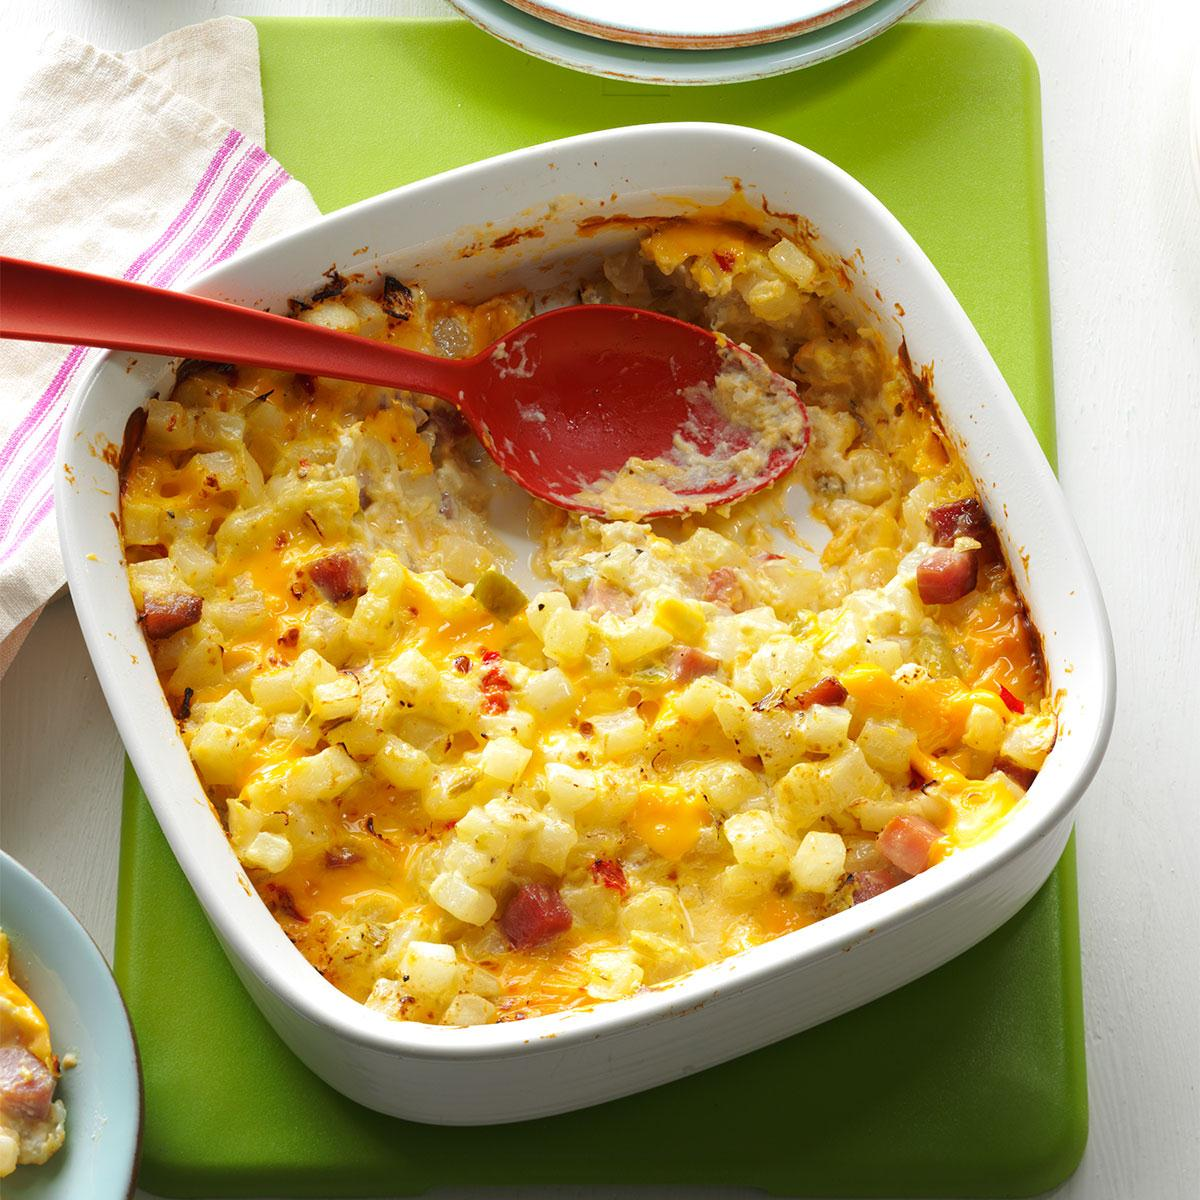 Ham cheese & casserole potato